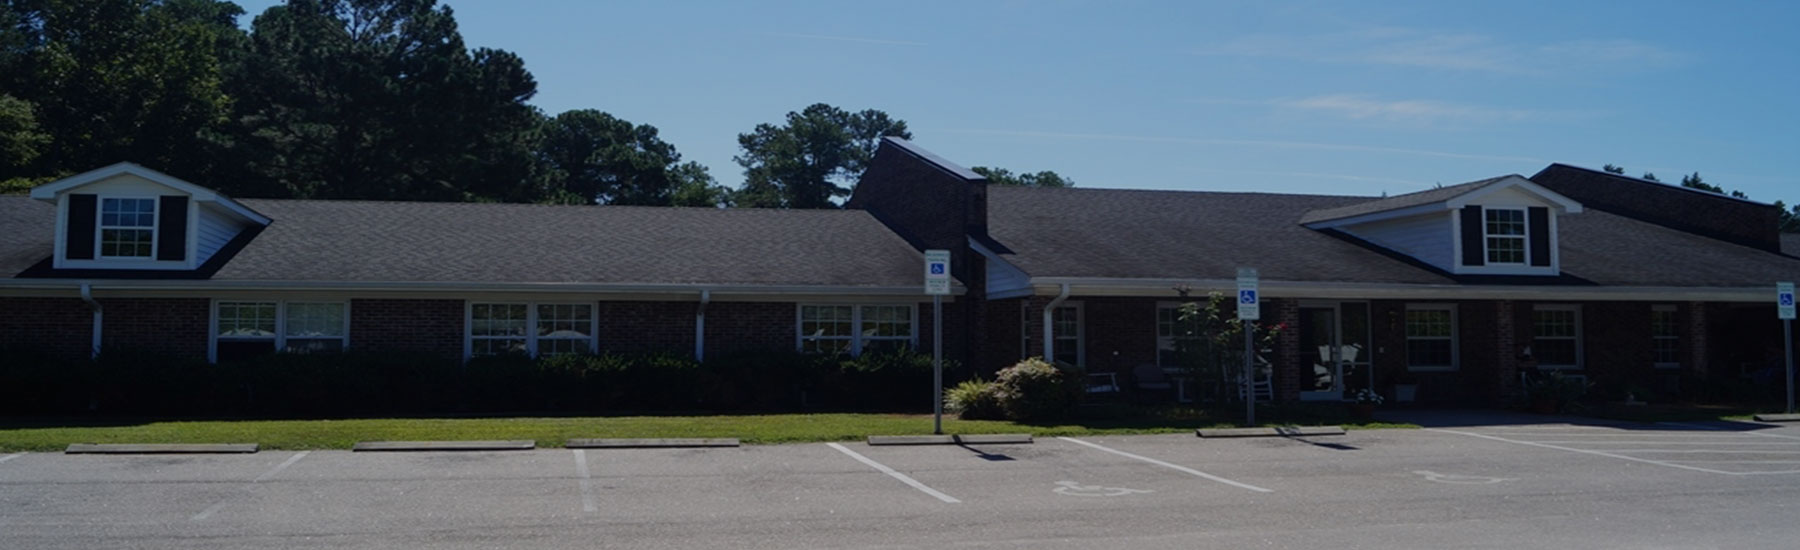 Senior Care Cary North Carolina